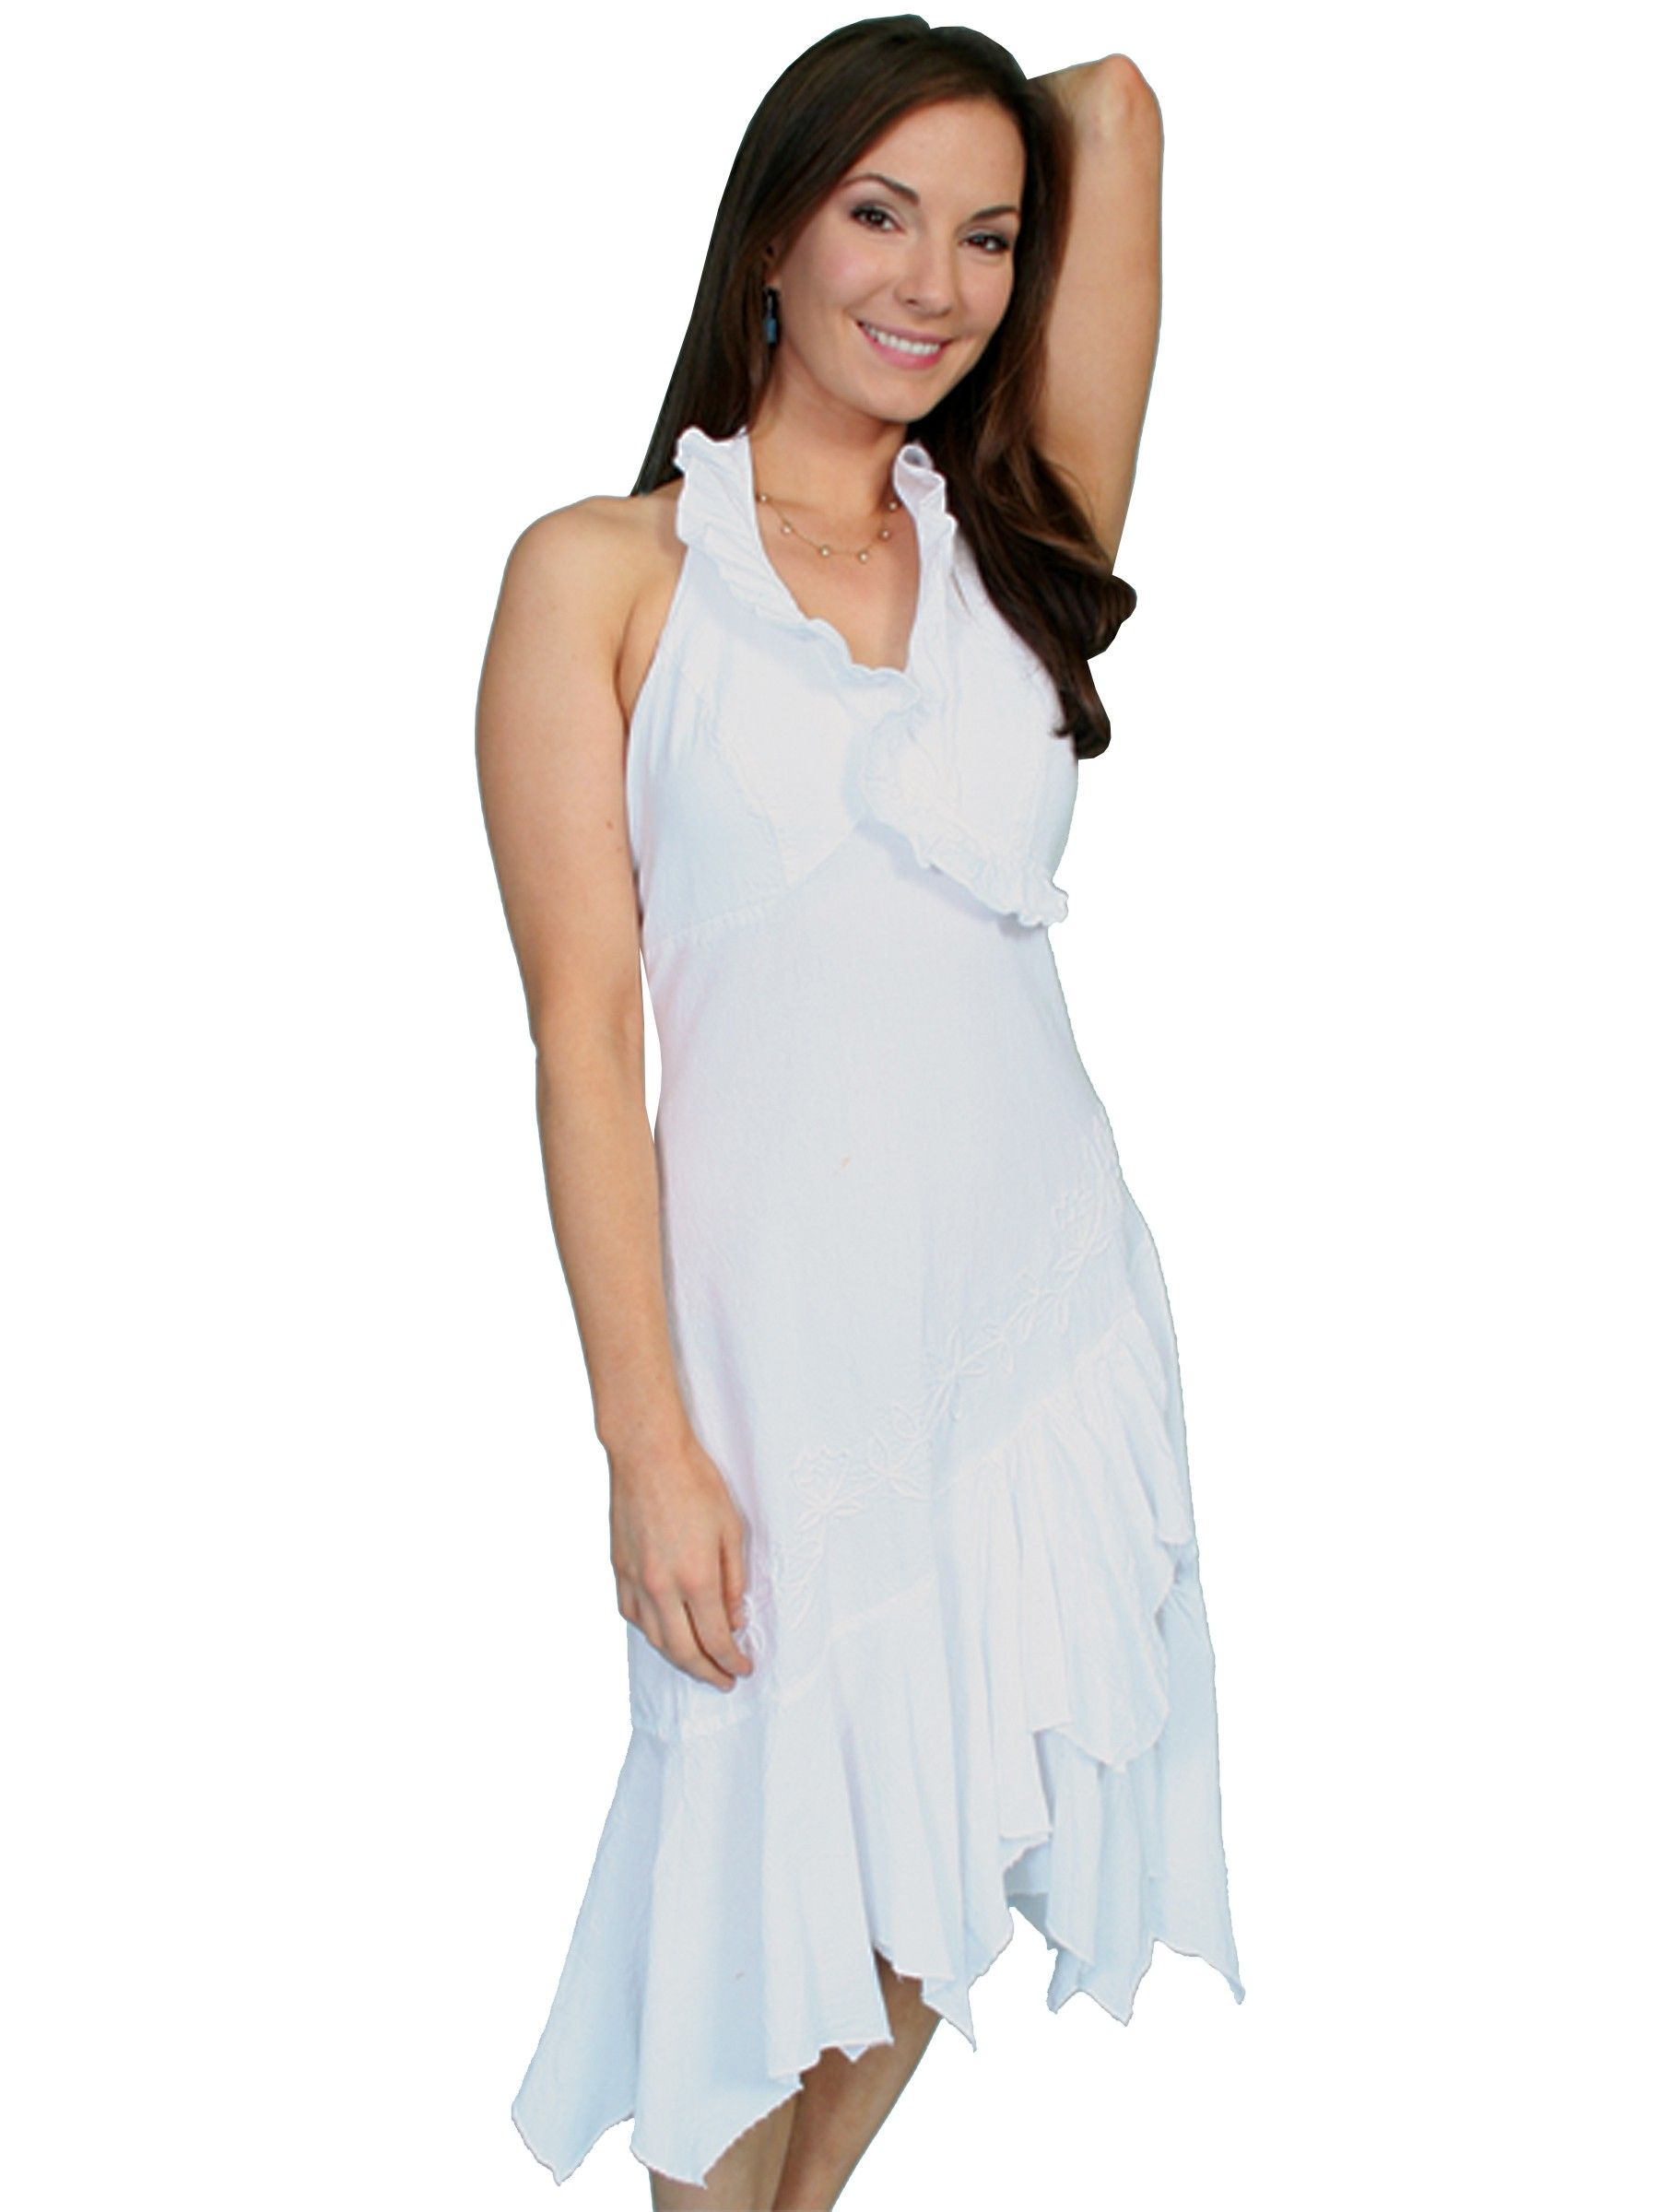 Rolling Prairie Cotton Wedding Dress in White - SOLD OUT